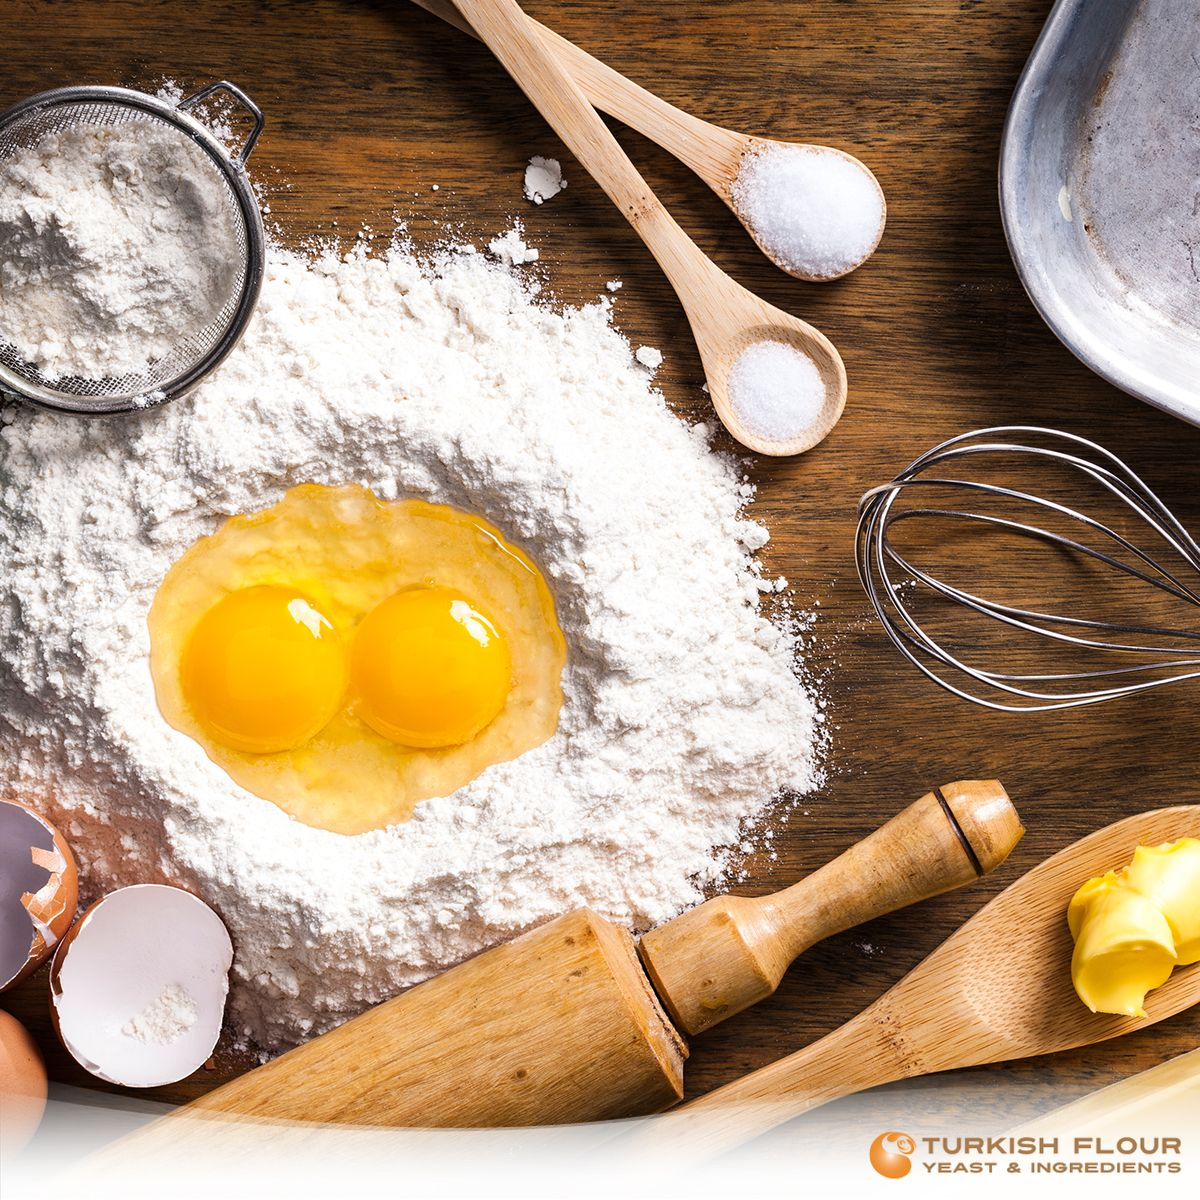 #BakingTips When you measure the right amount of flour for a perfect bread do not cross the limit by adding some more while kneading. Spray a little amount of olive oil to ease the kneading process.